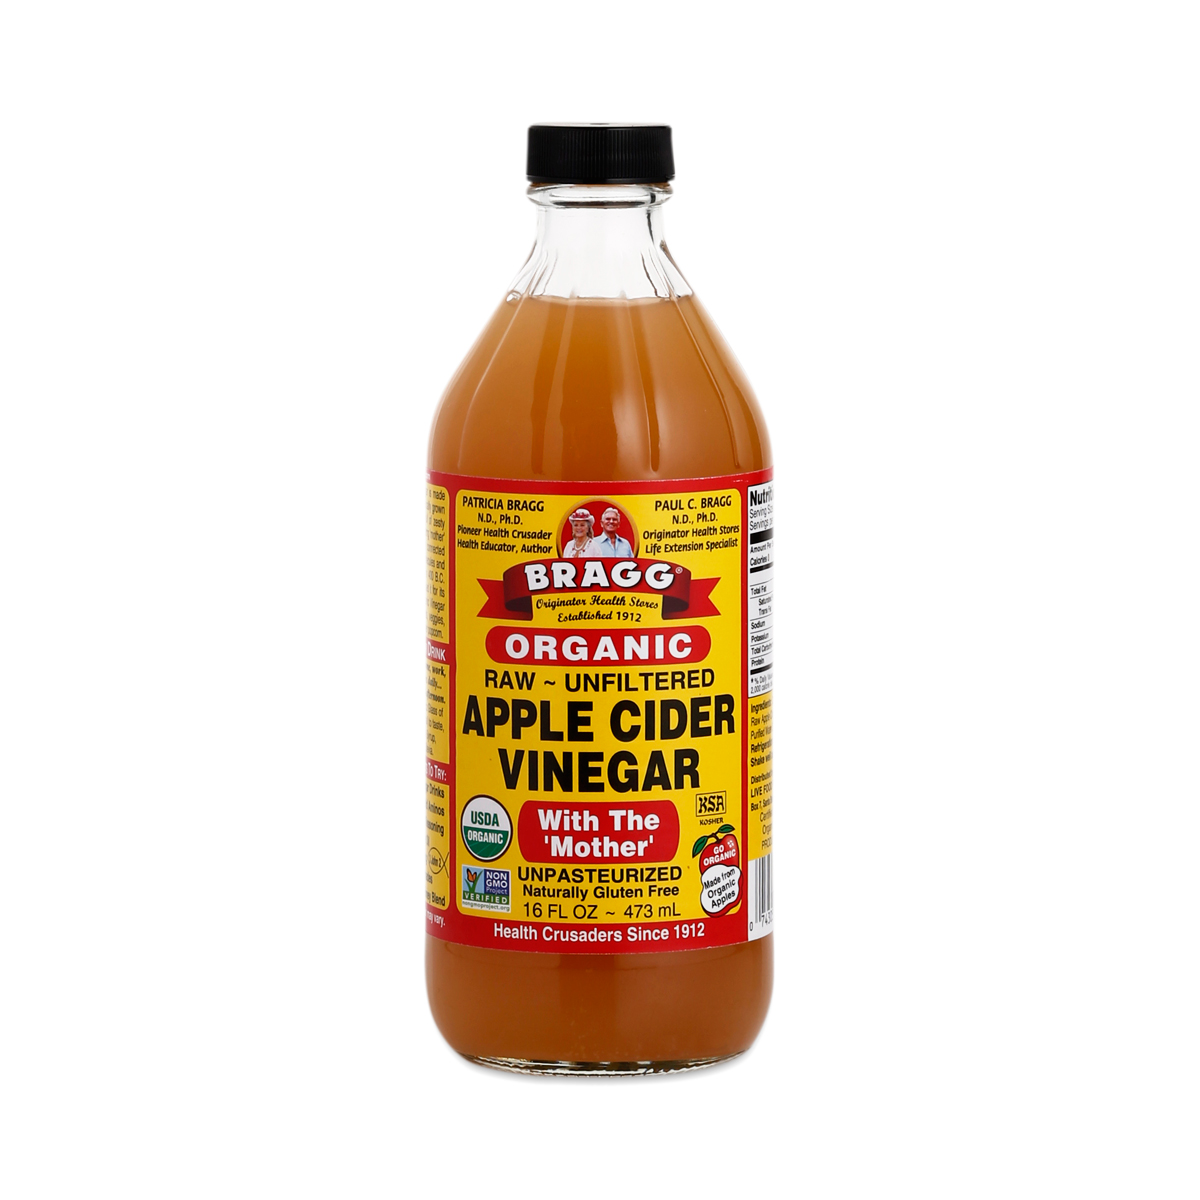 Apple Cider Vinegar Fitness Lie